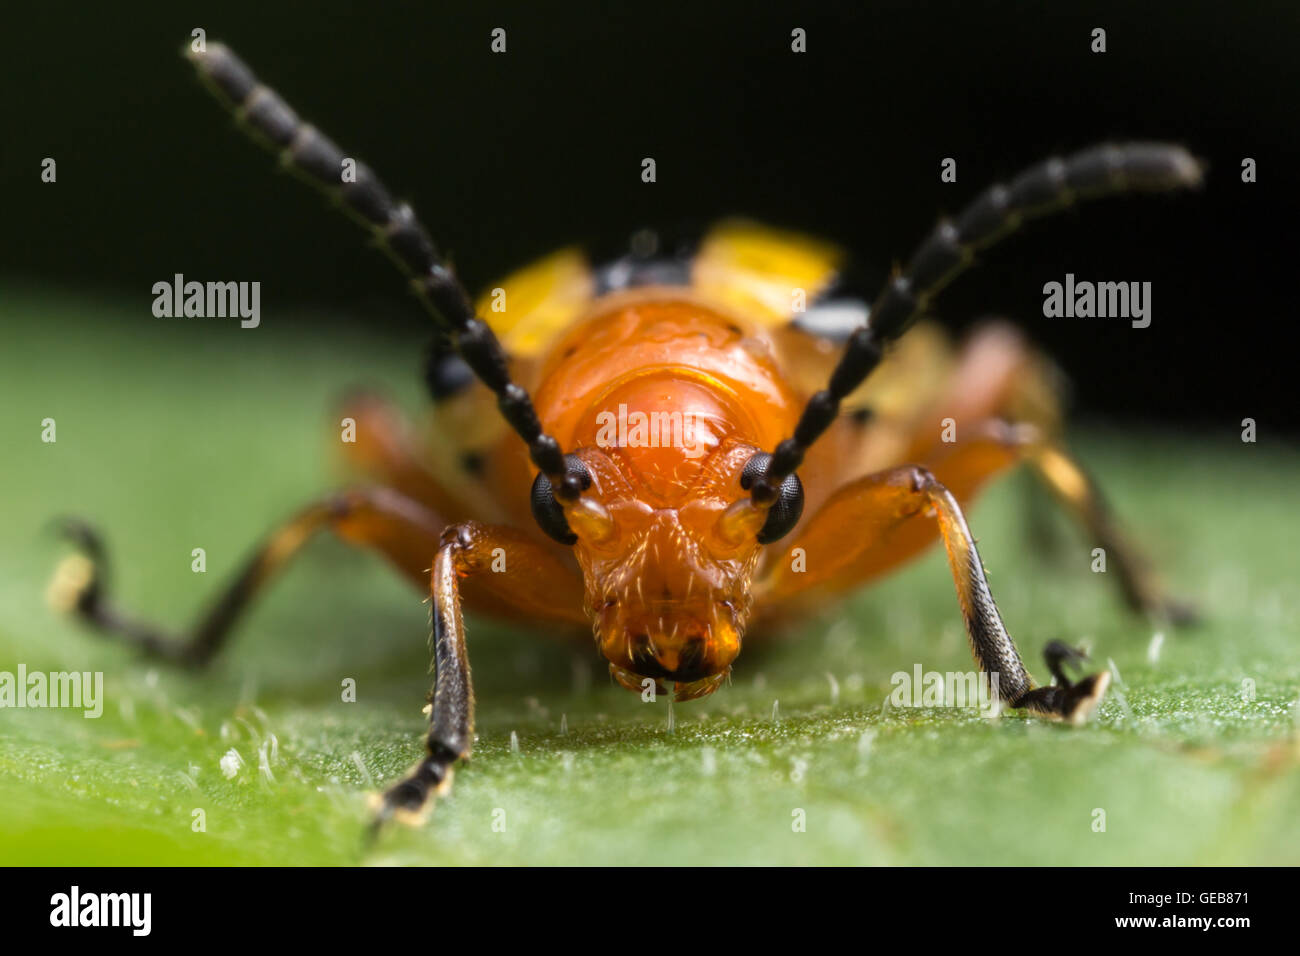 A frontal view of a Three-lined Potato Beetle (Lema daturaphila) on a leaf. - Stock Image